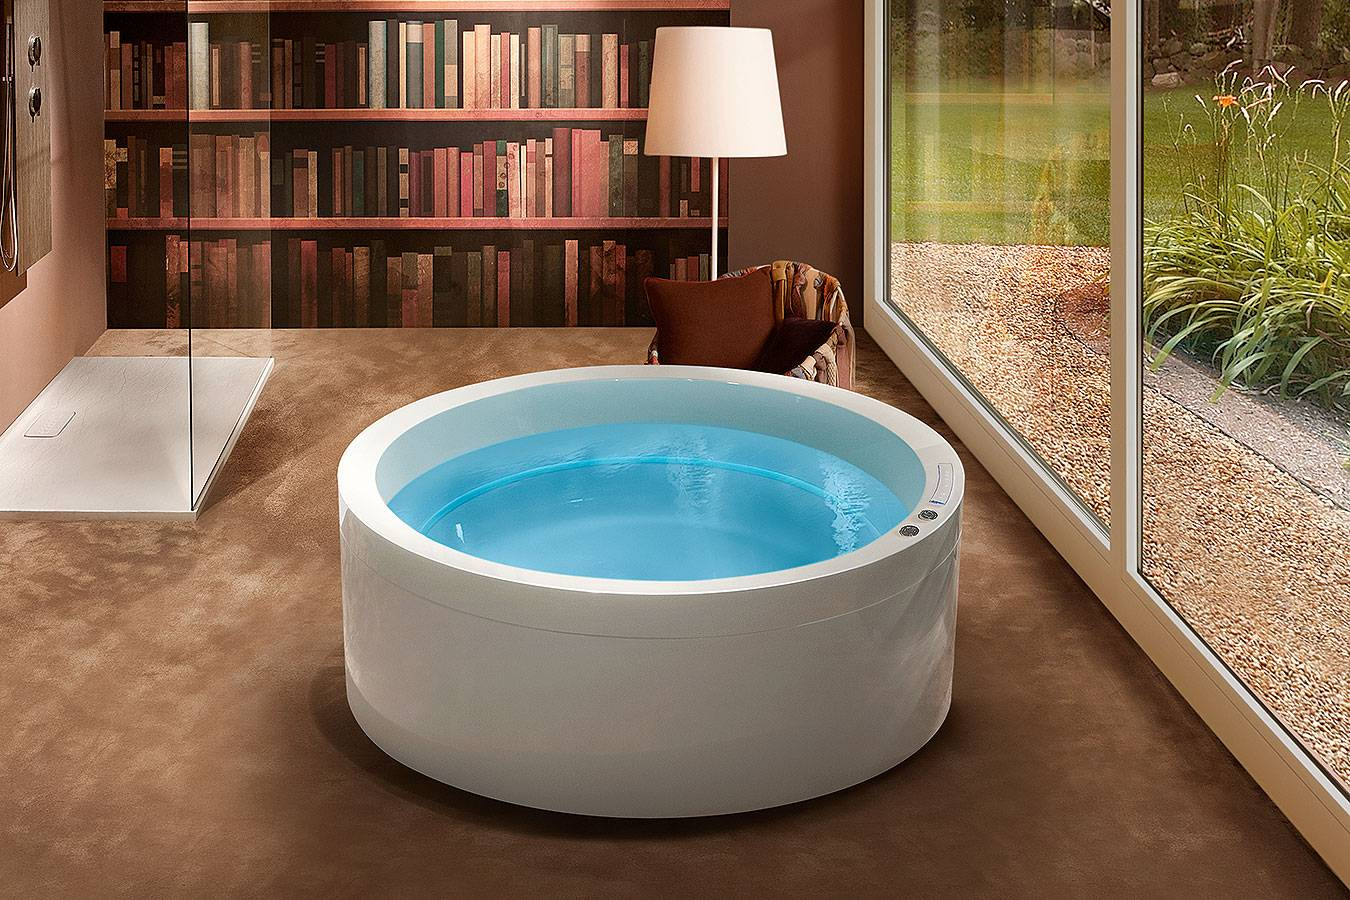 Bathtub Free standing whirlpool Ghost system Tresse Dream 160